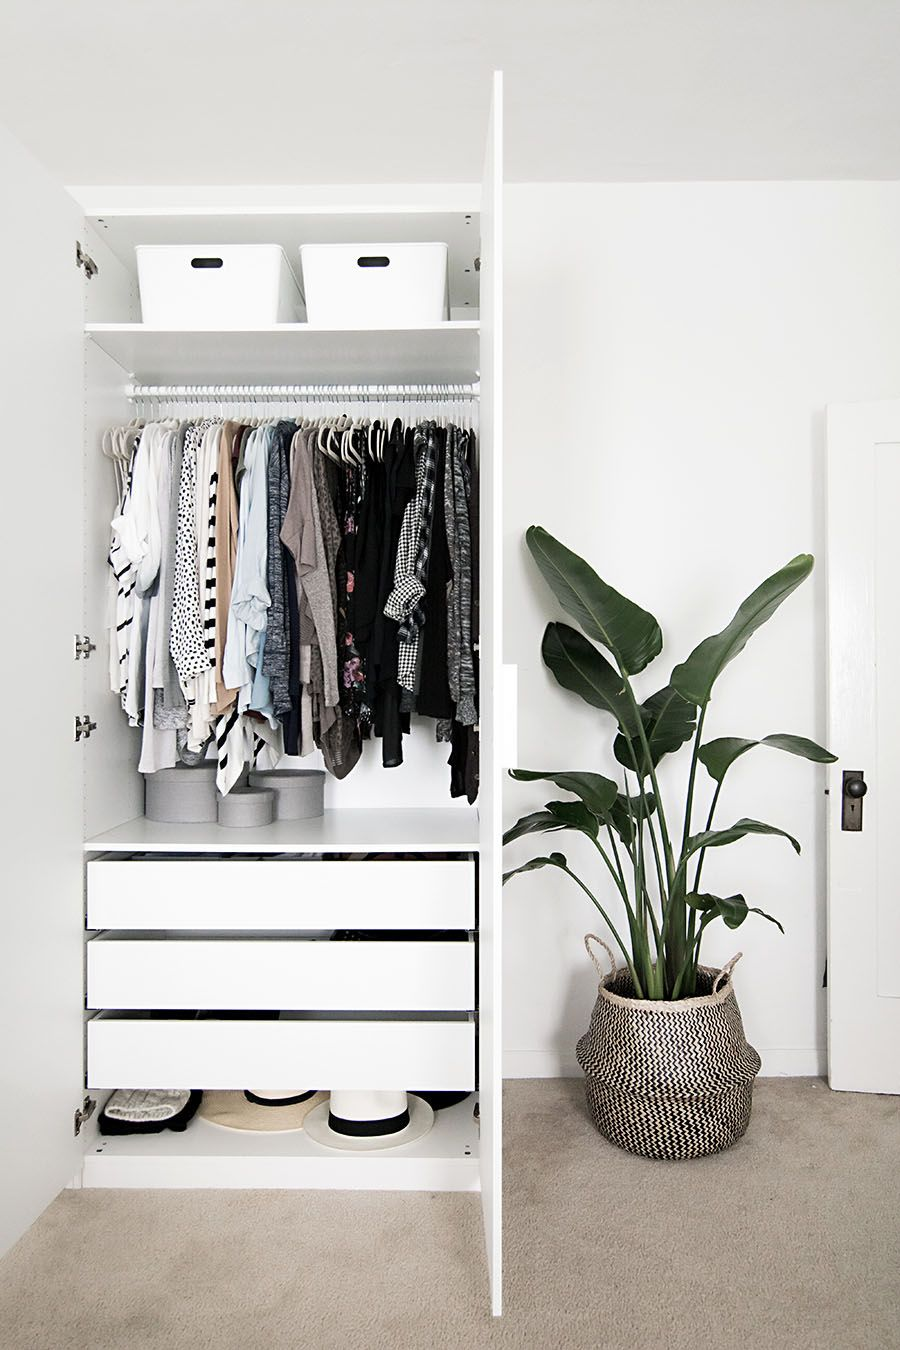 Bedroom Clothing Storage Ideas Hideaway Storage Ideas For Small Spaces Woodjobs Minimalist